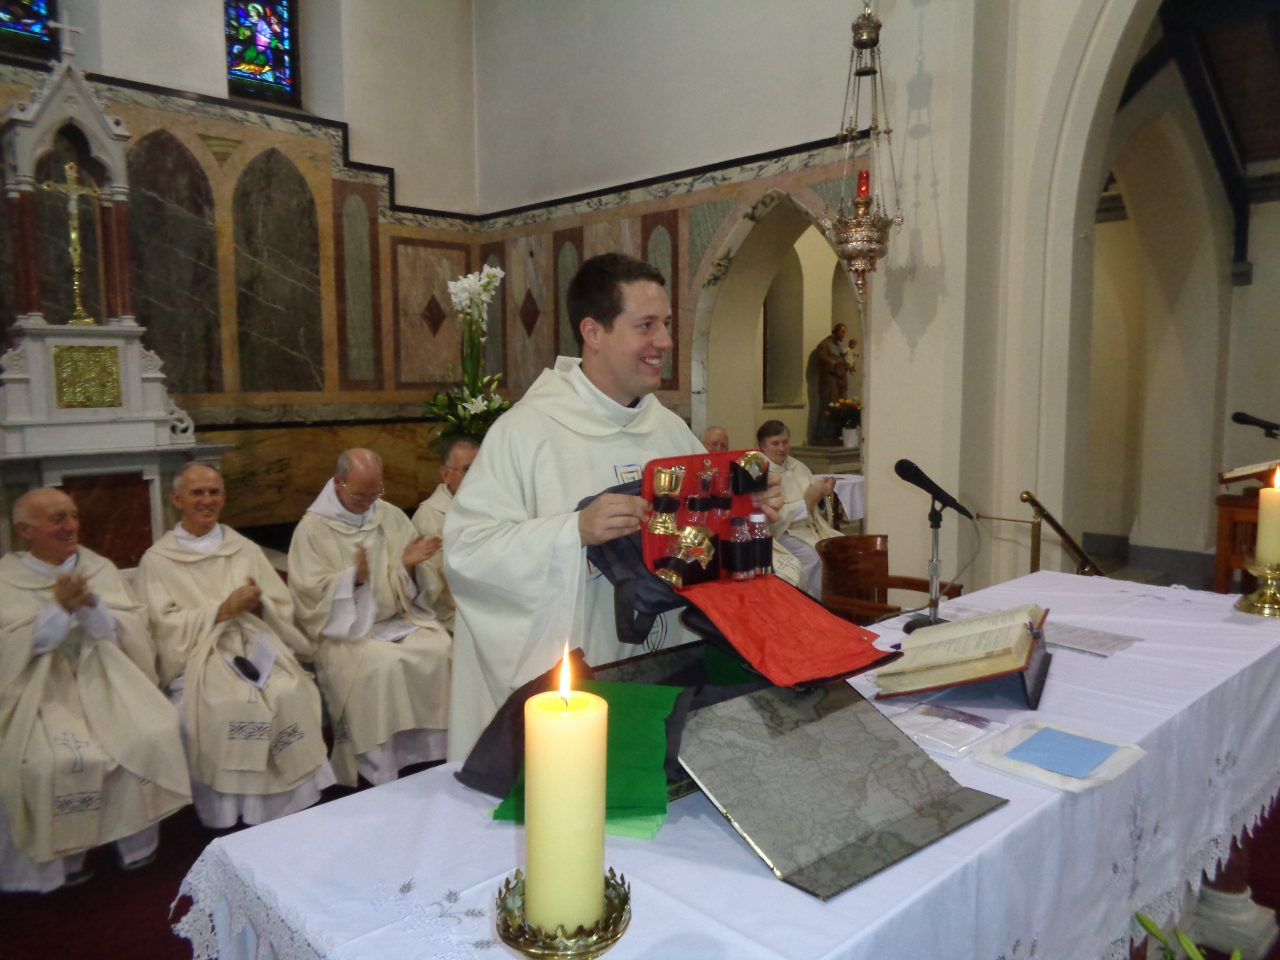 Fr. Tom Shows His Present from the Parish to the Congregation